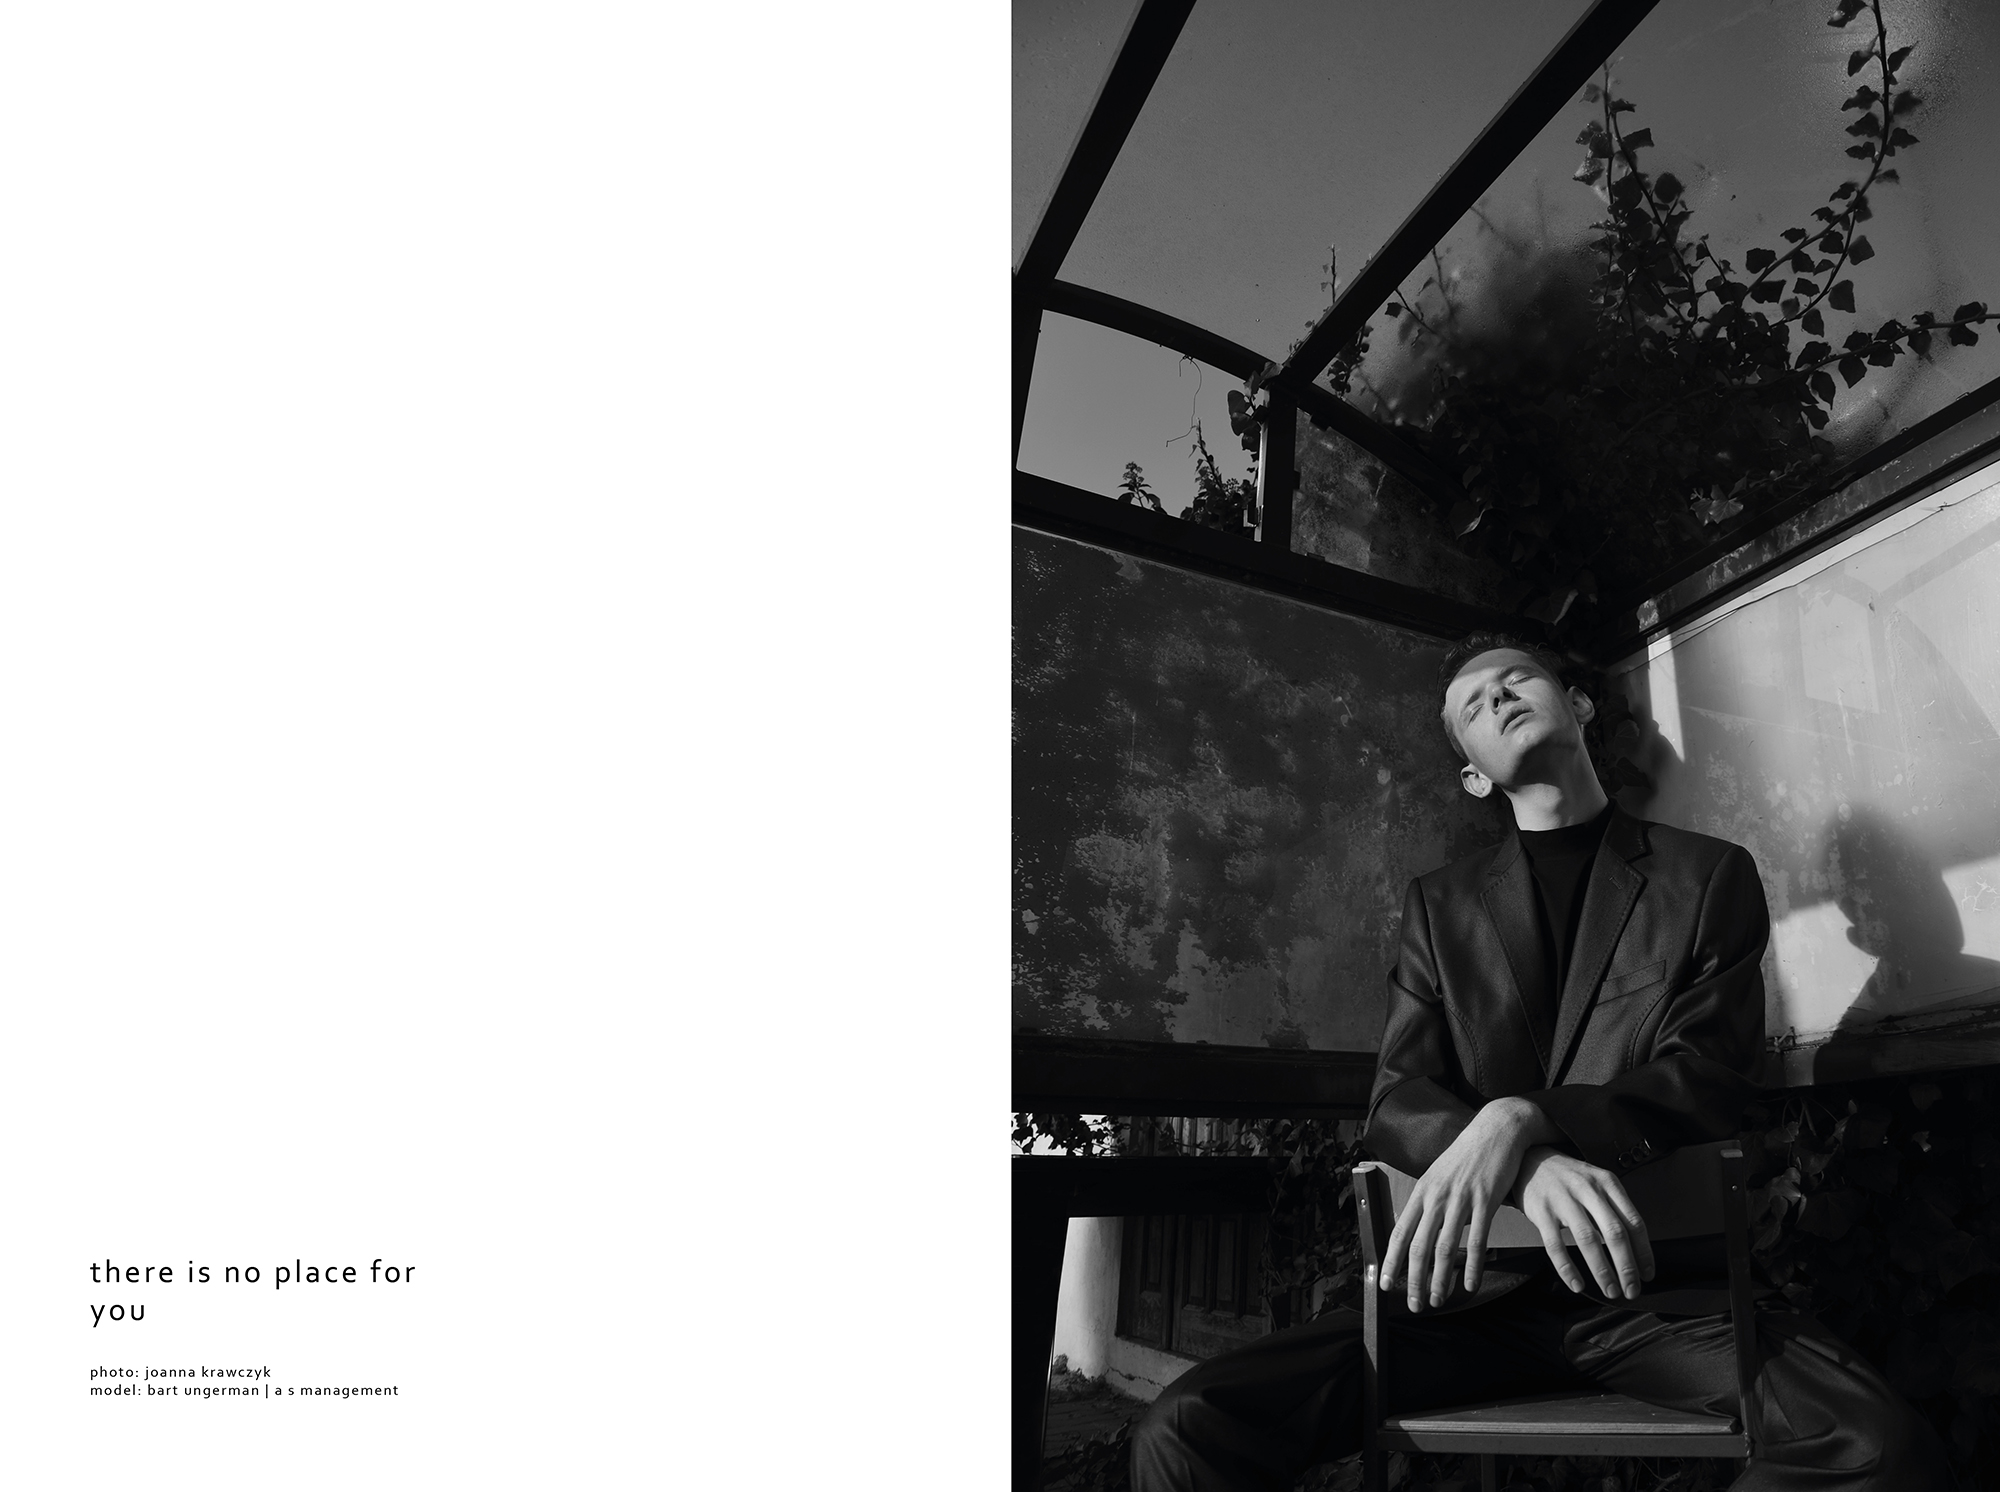 There Is No Place For You by Joanna Krawczyk for CHASSEUR MAGAZINE